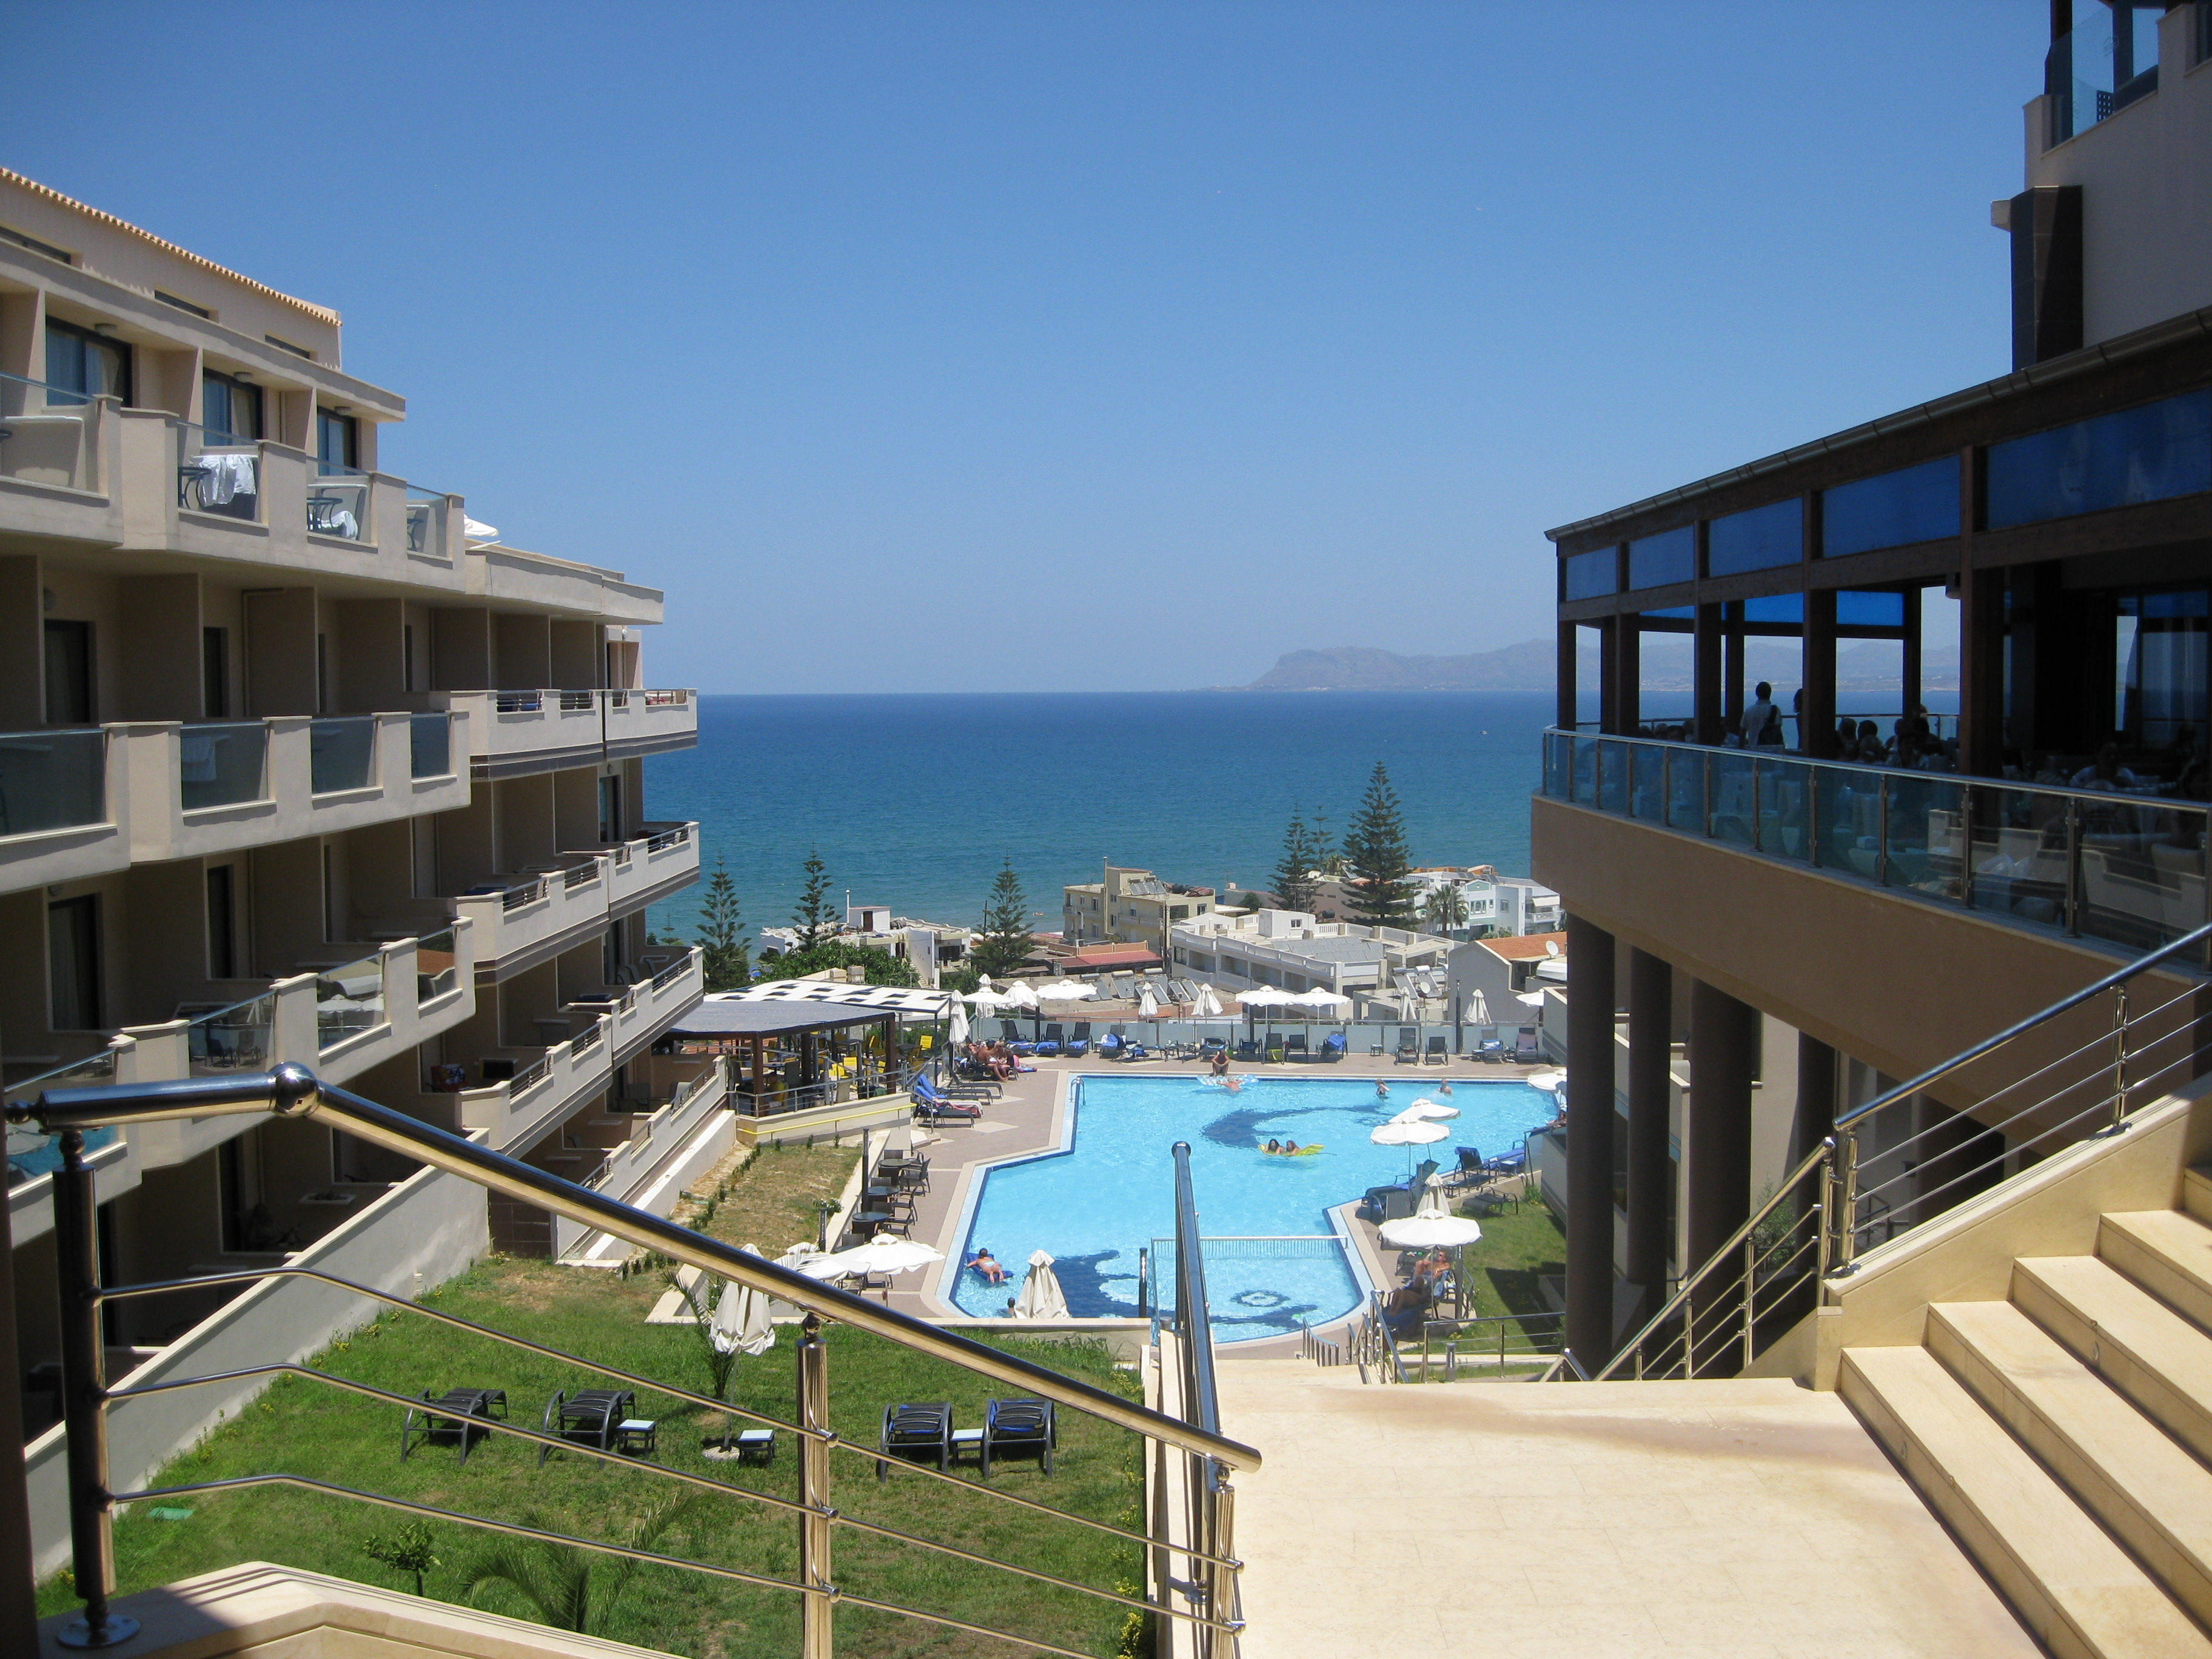 Rooms: The Galini Seaview Hotel, Aghia Marina, Crete